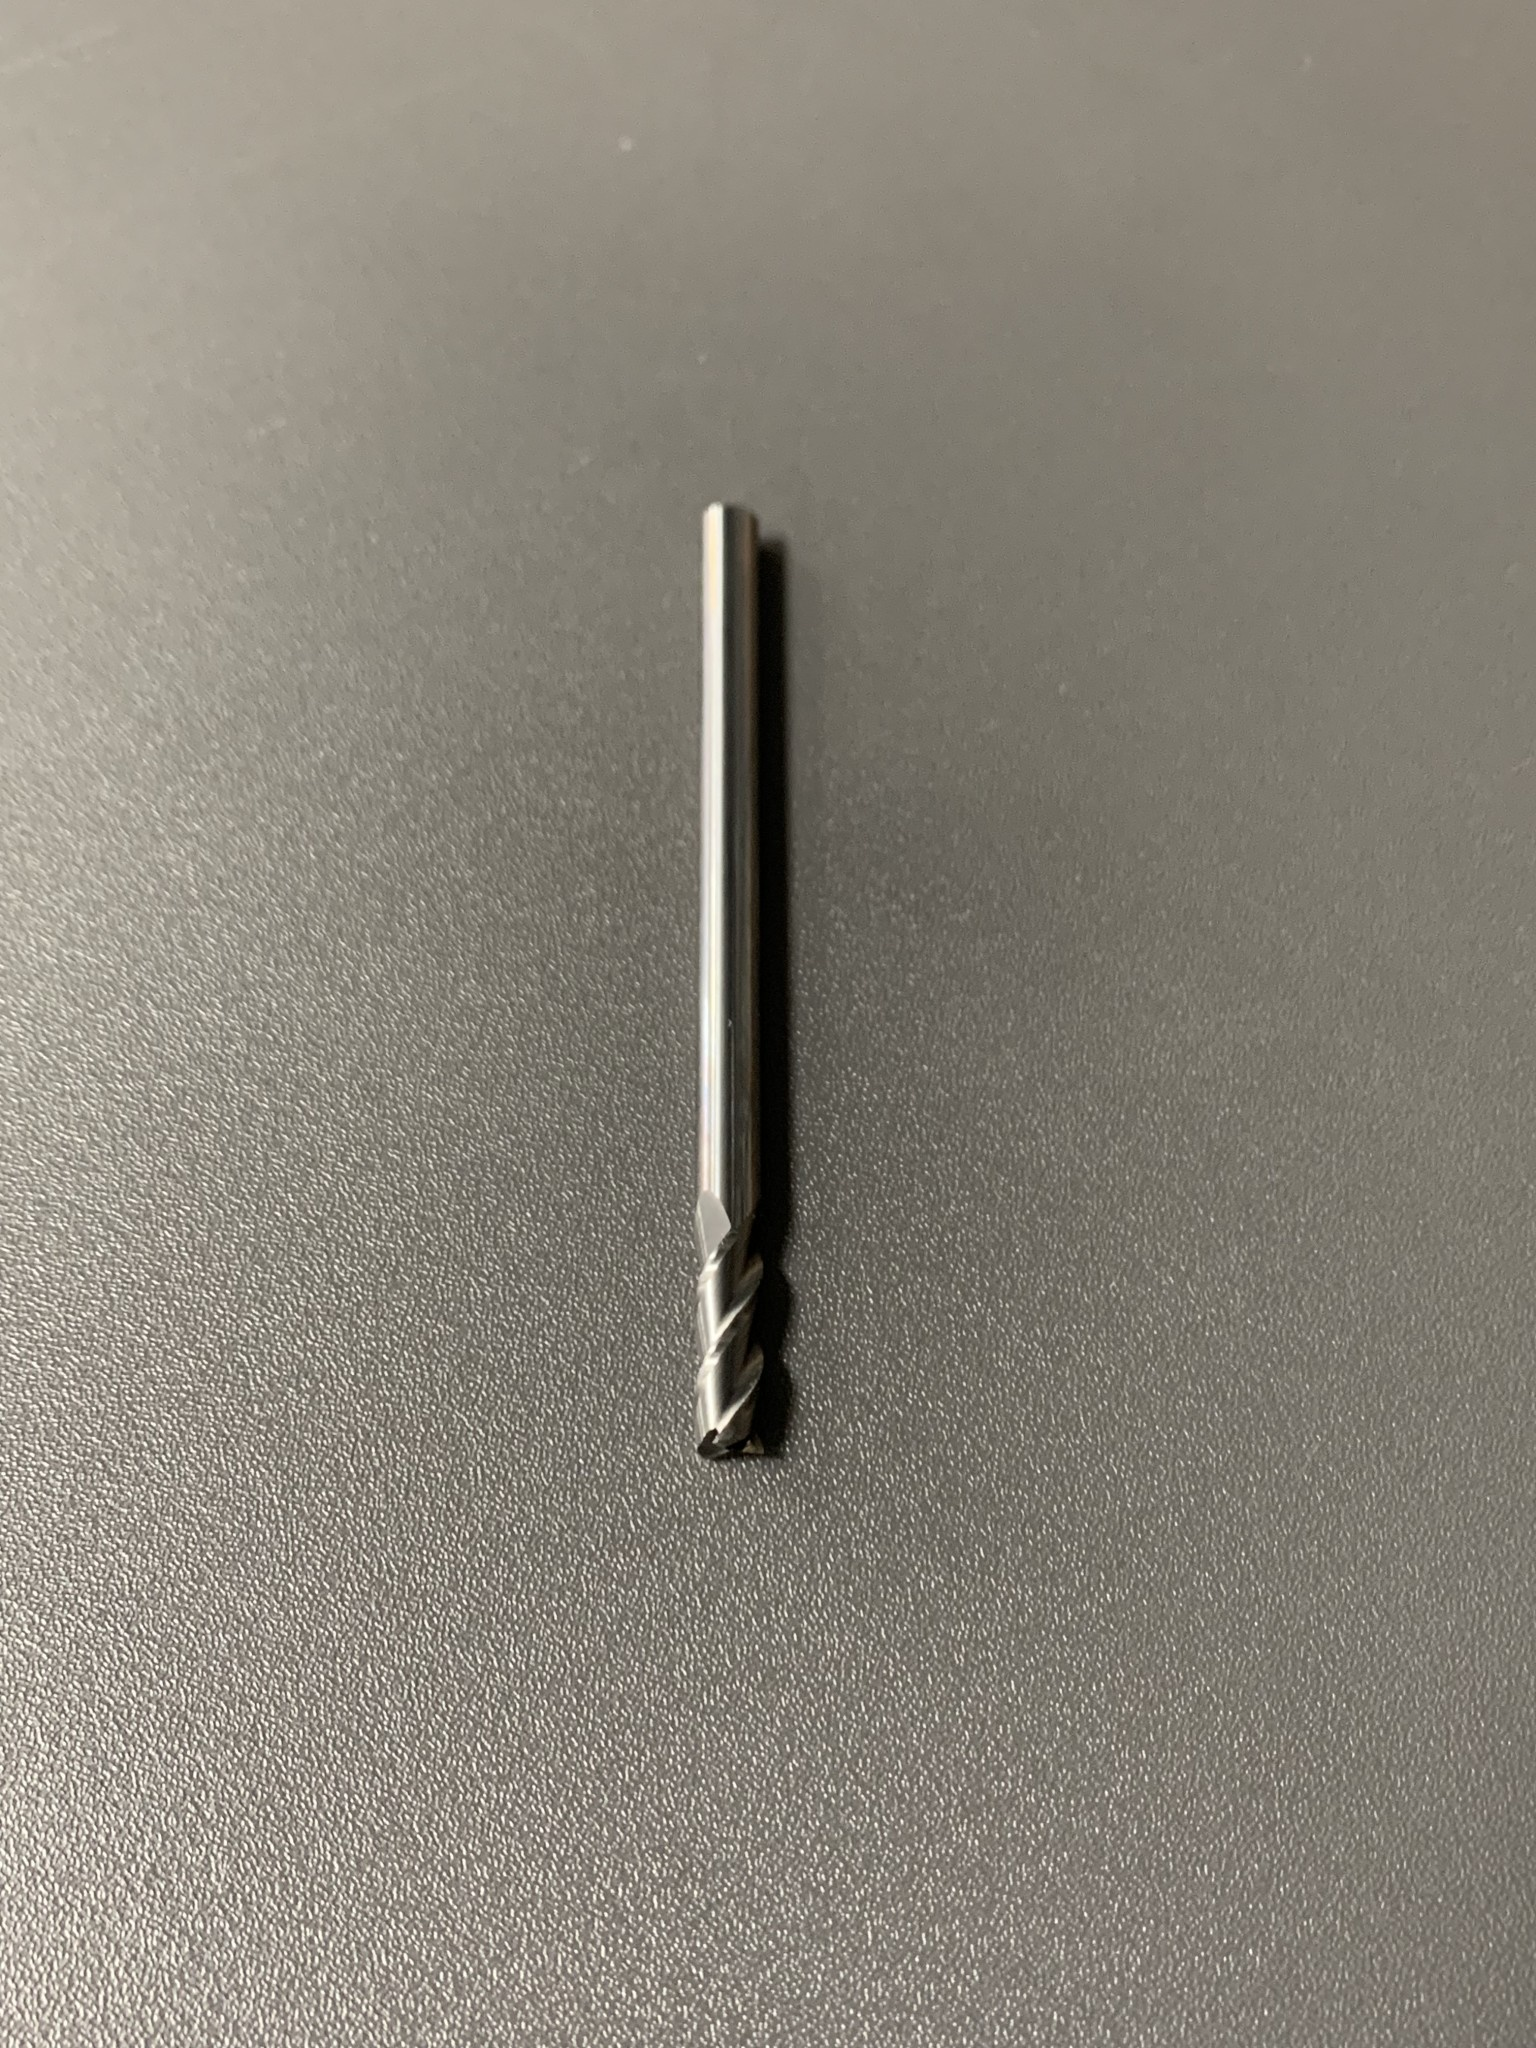 "1/4"" End Mill Tooling Bit"